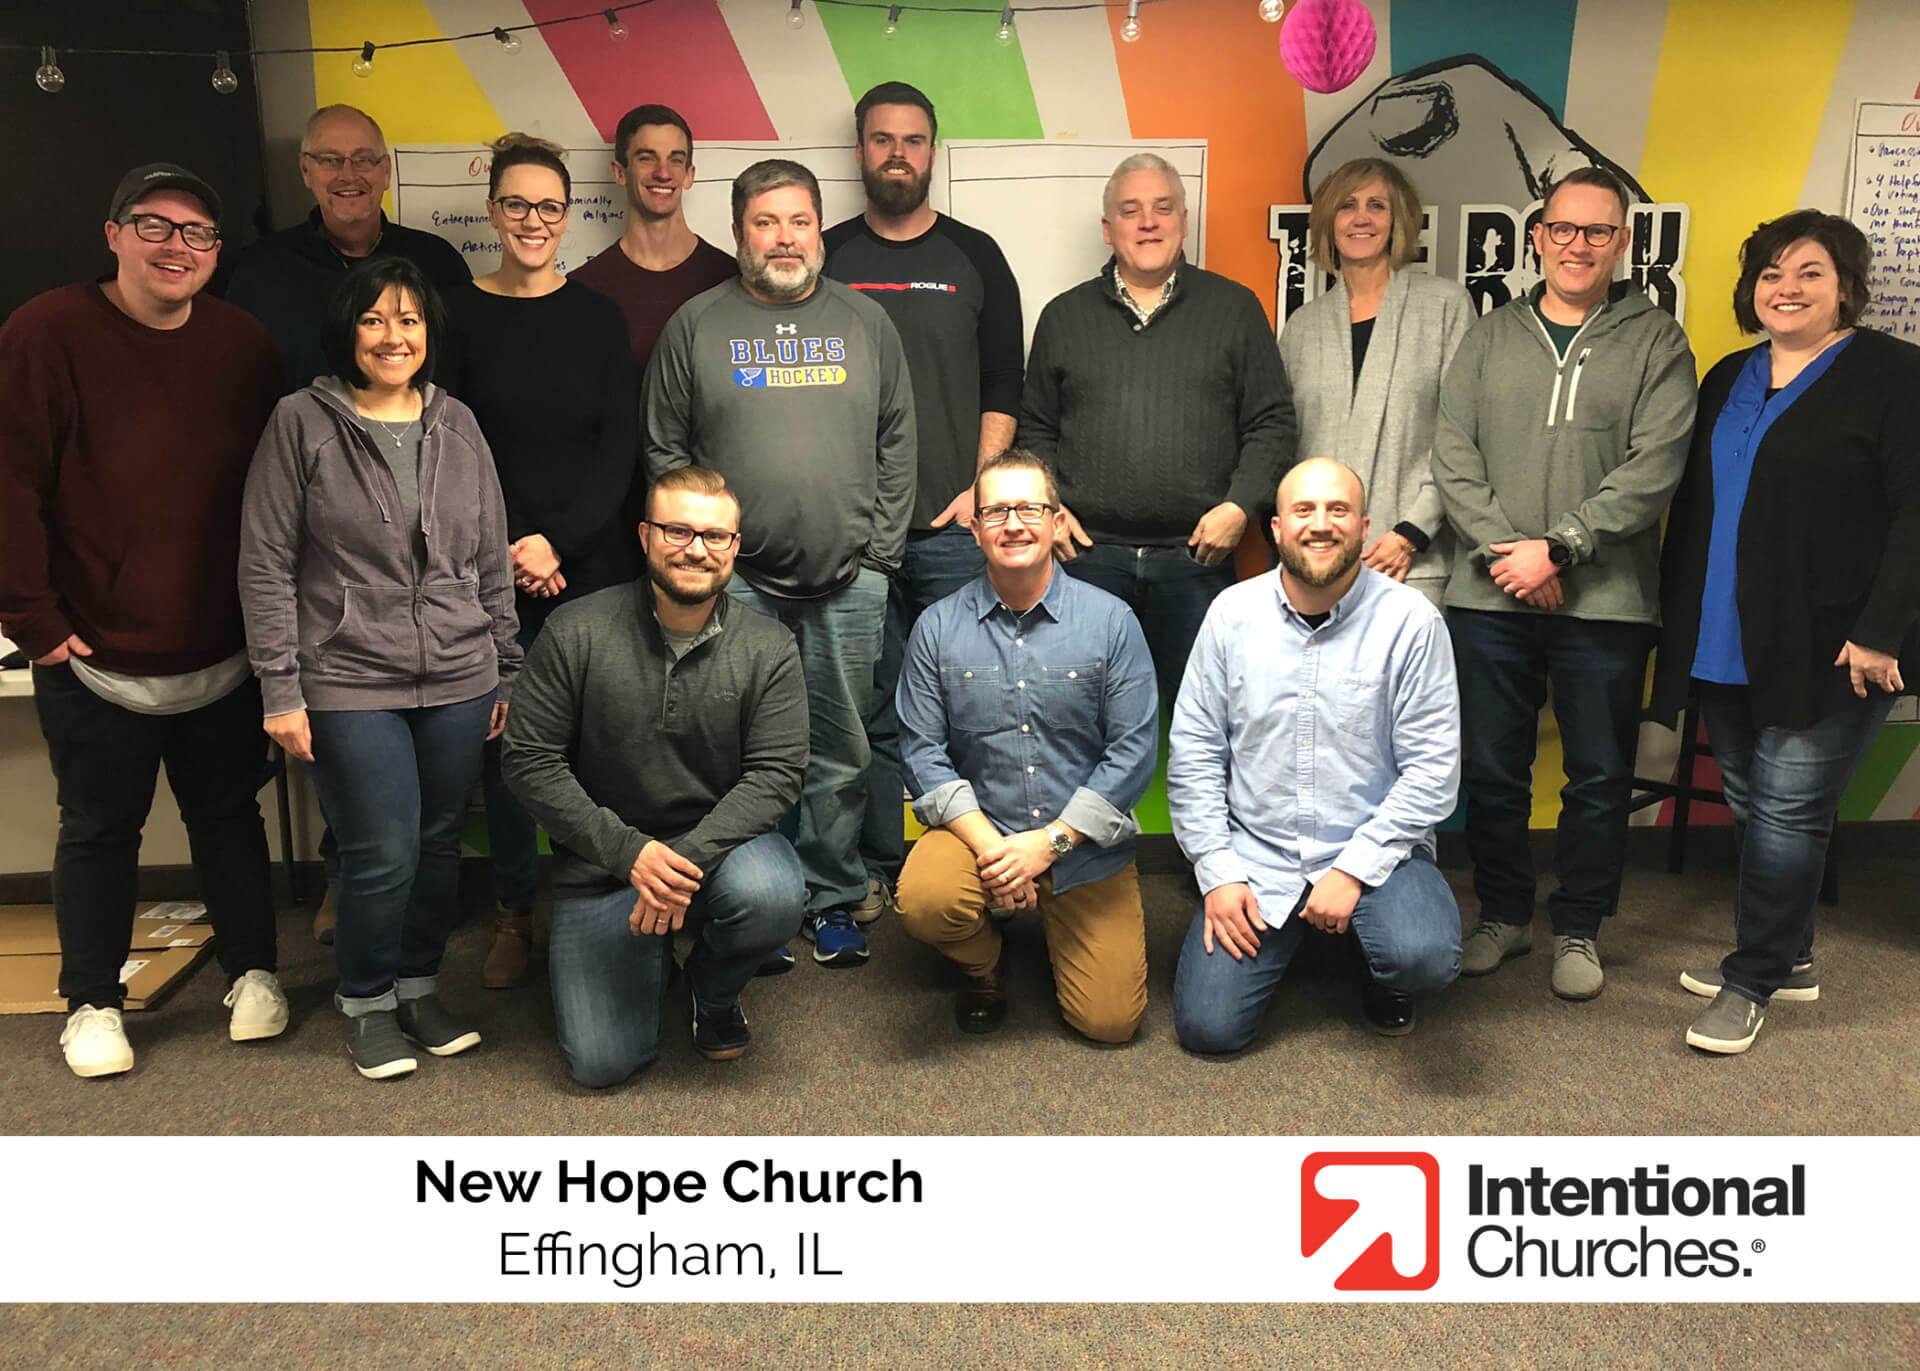 Learnings from New Hope Church in Effingham, IL